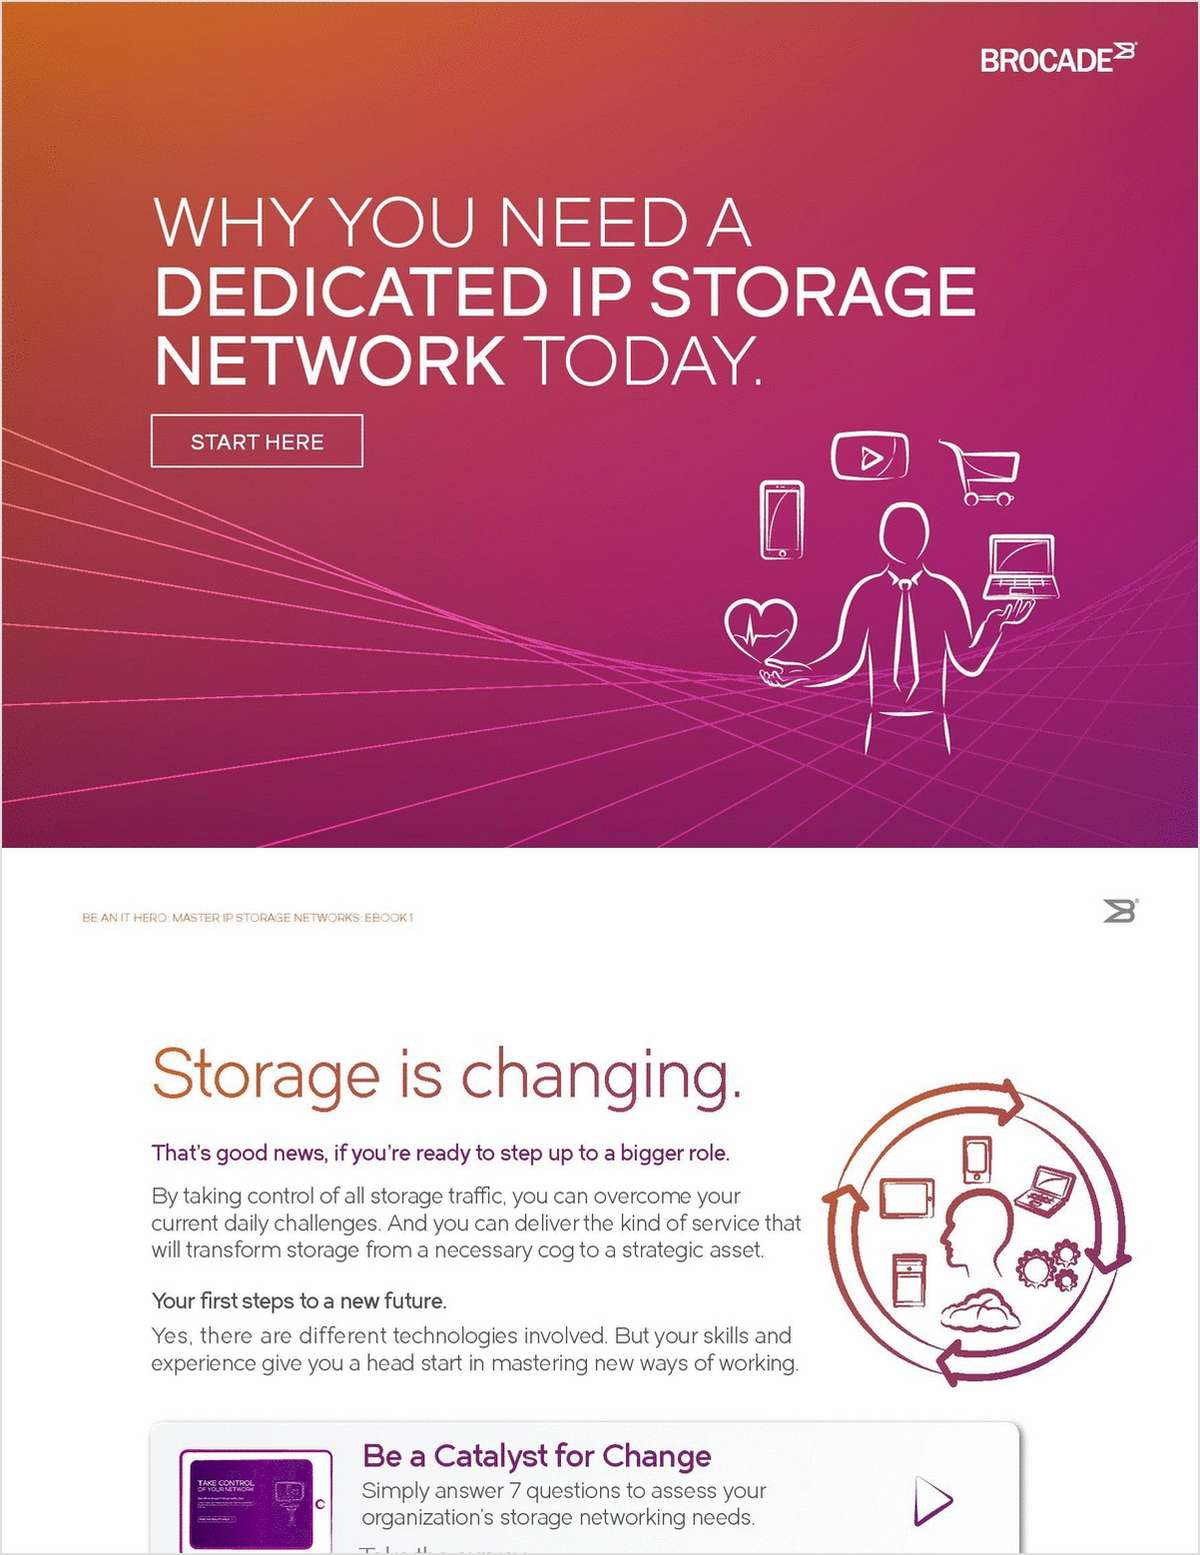 Why You Need a Dedicated IP Storage Network Today